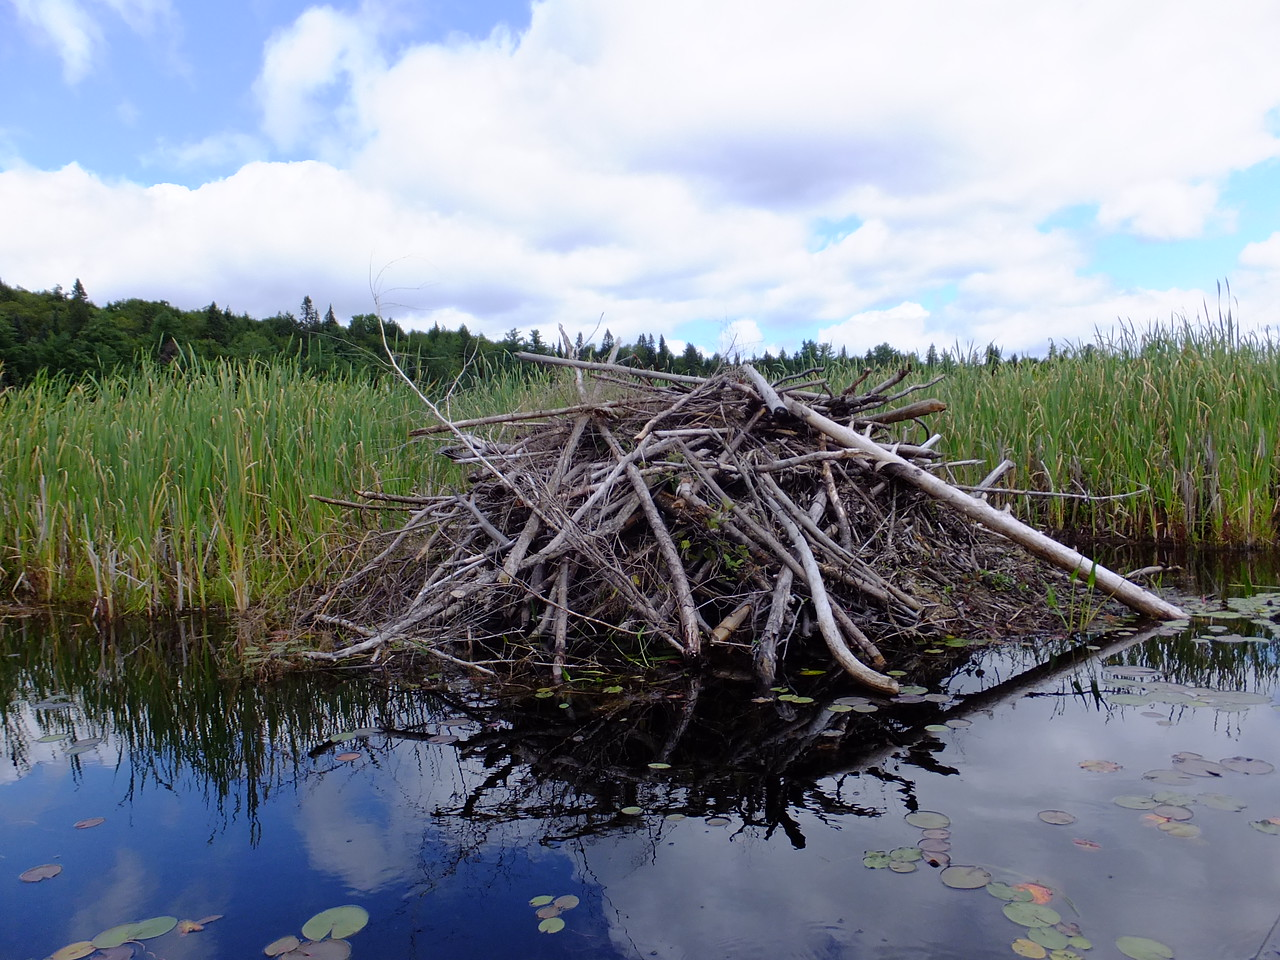 If you see this beaver lodge, you're lost.  Turn around, and follow the underwater grass bending in the direction of the flow.